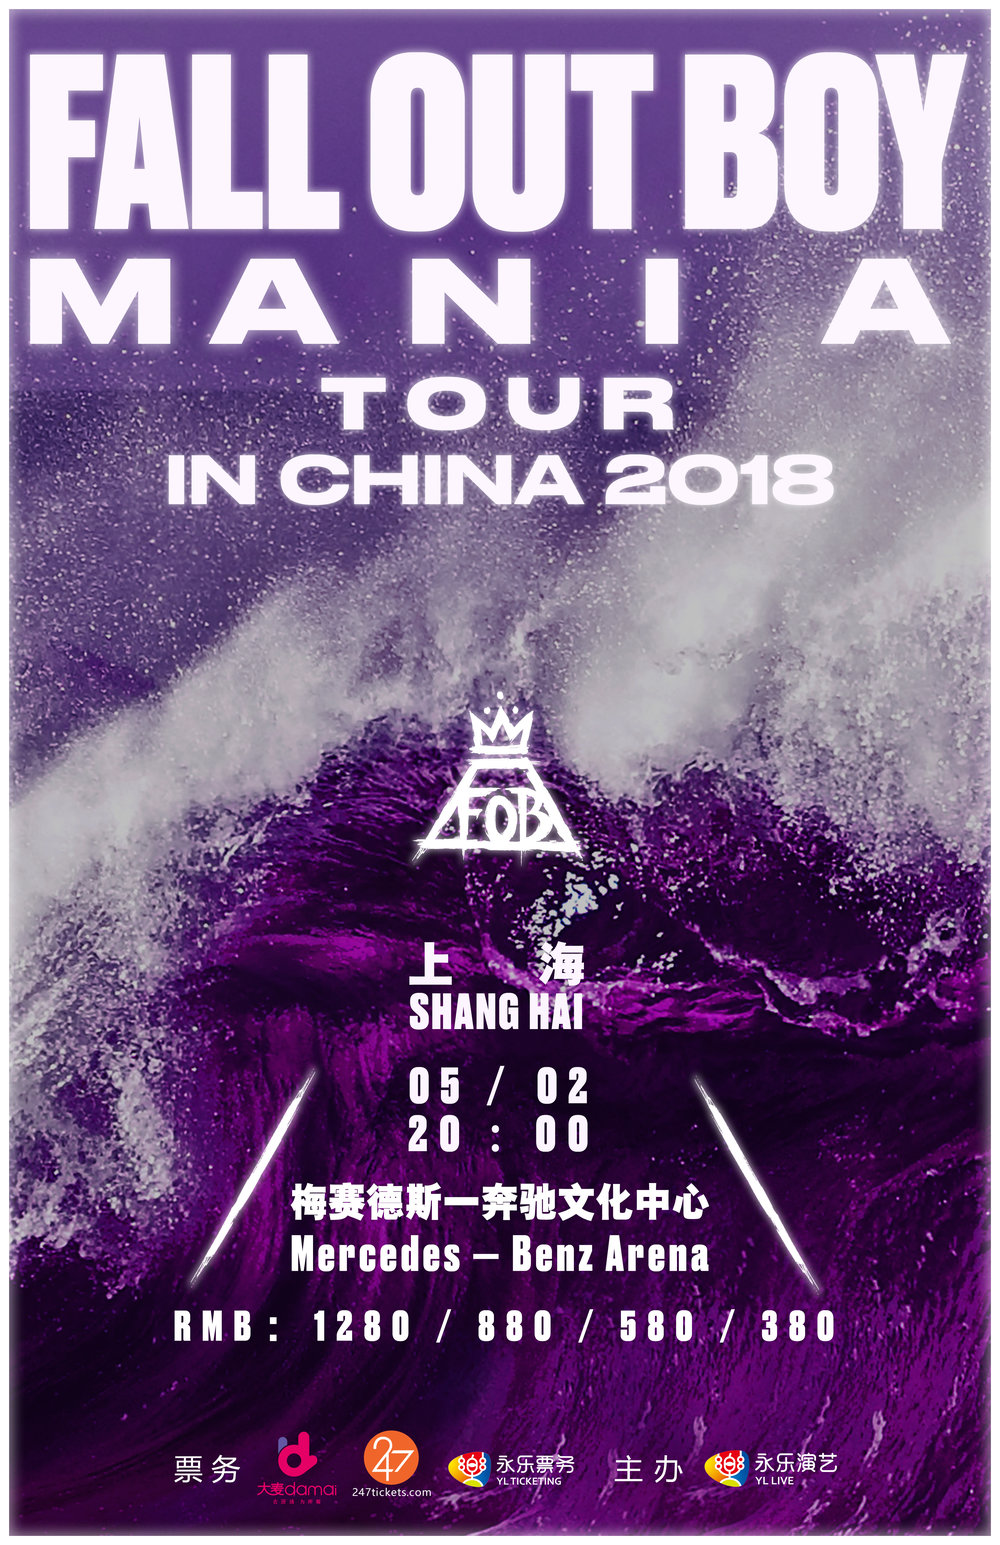 Coming To China Fall Out Boy